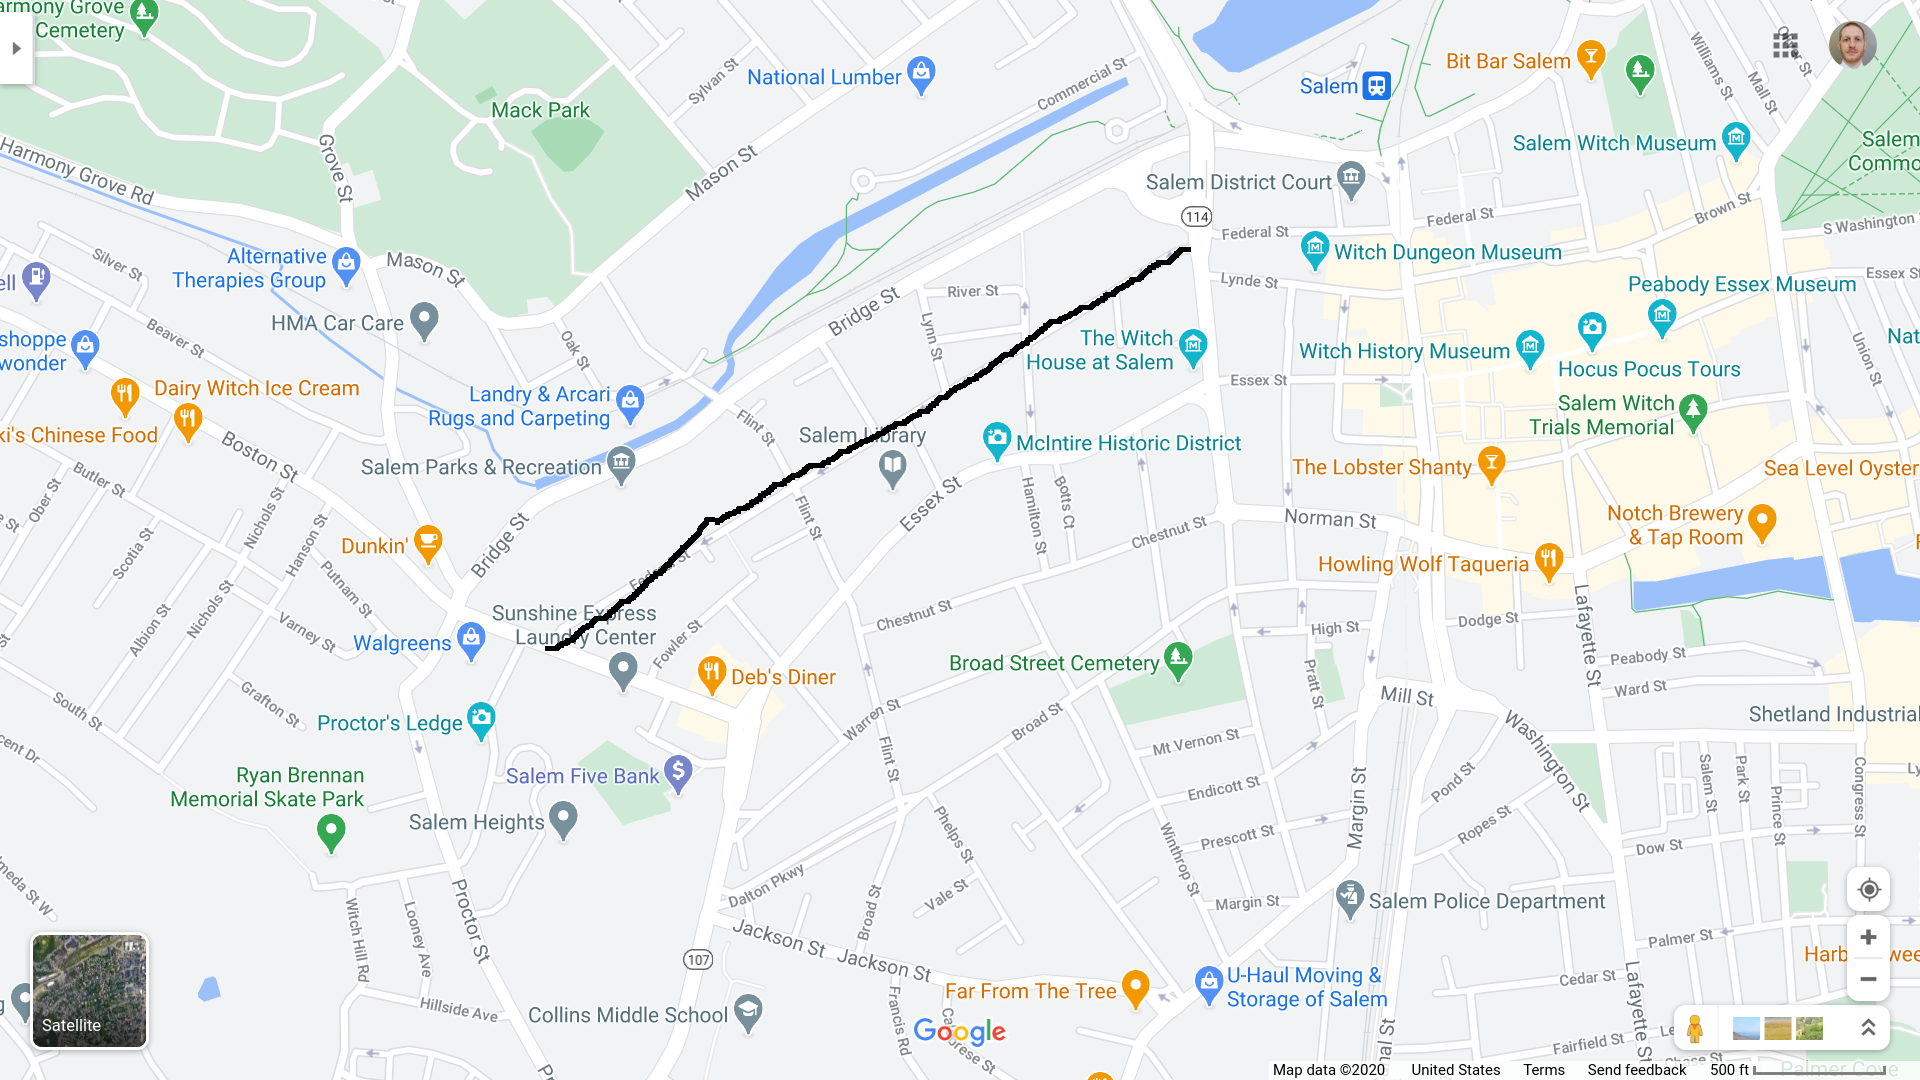 A google map showing a line drawn on Federal Street from Summer Street to Boston Street